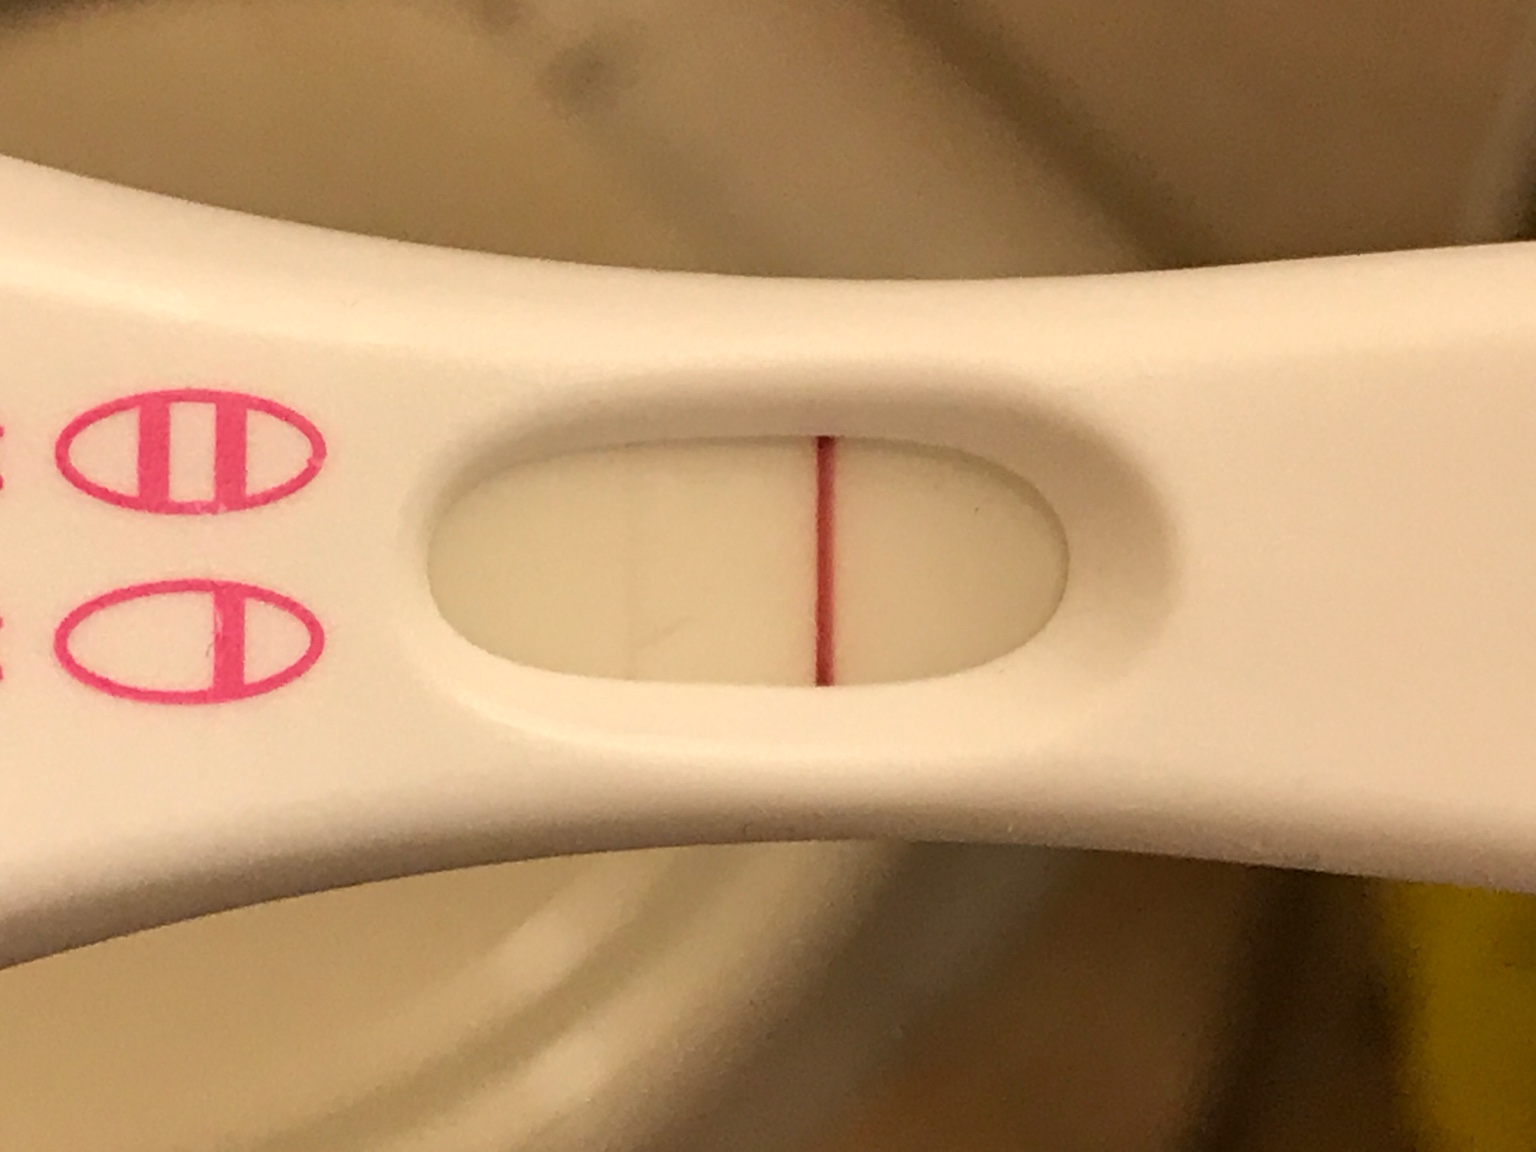 First Response Faint Line - False Positive?